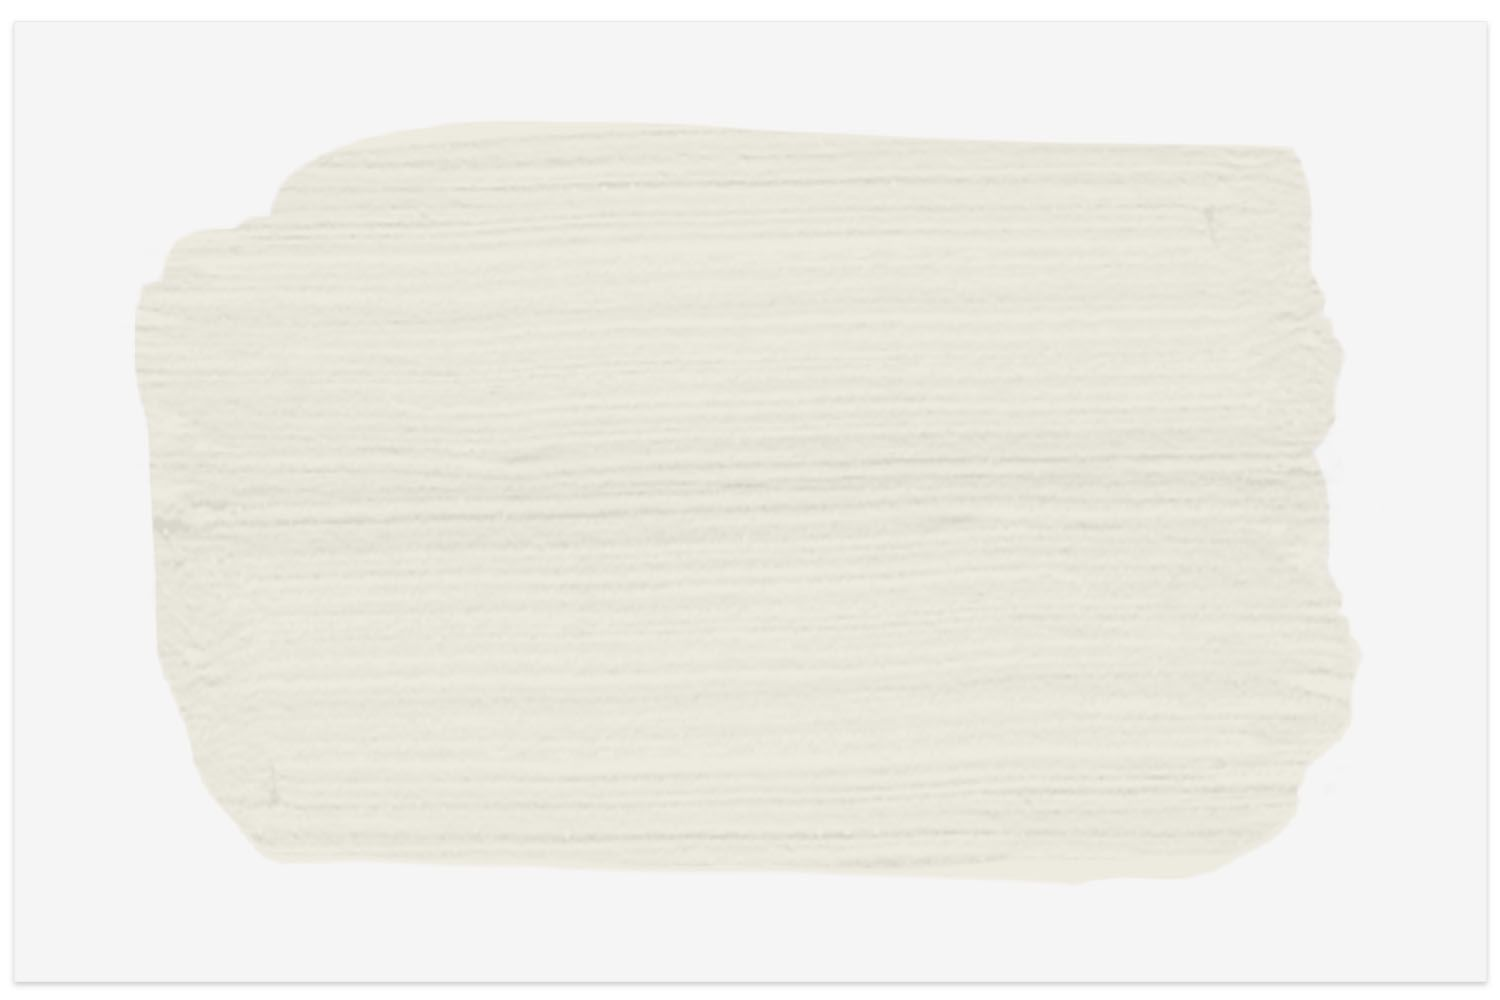 Sherwin-Williams Alabaster paint swatch